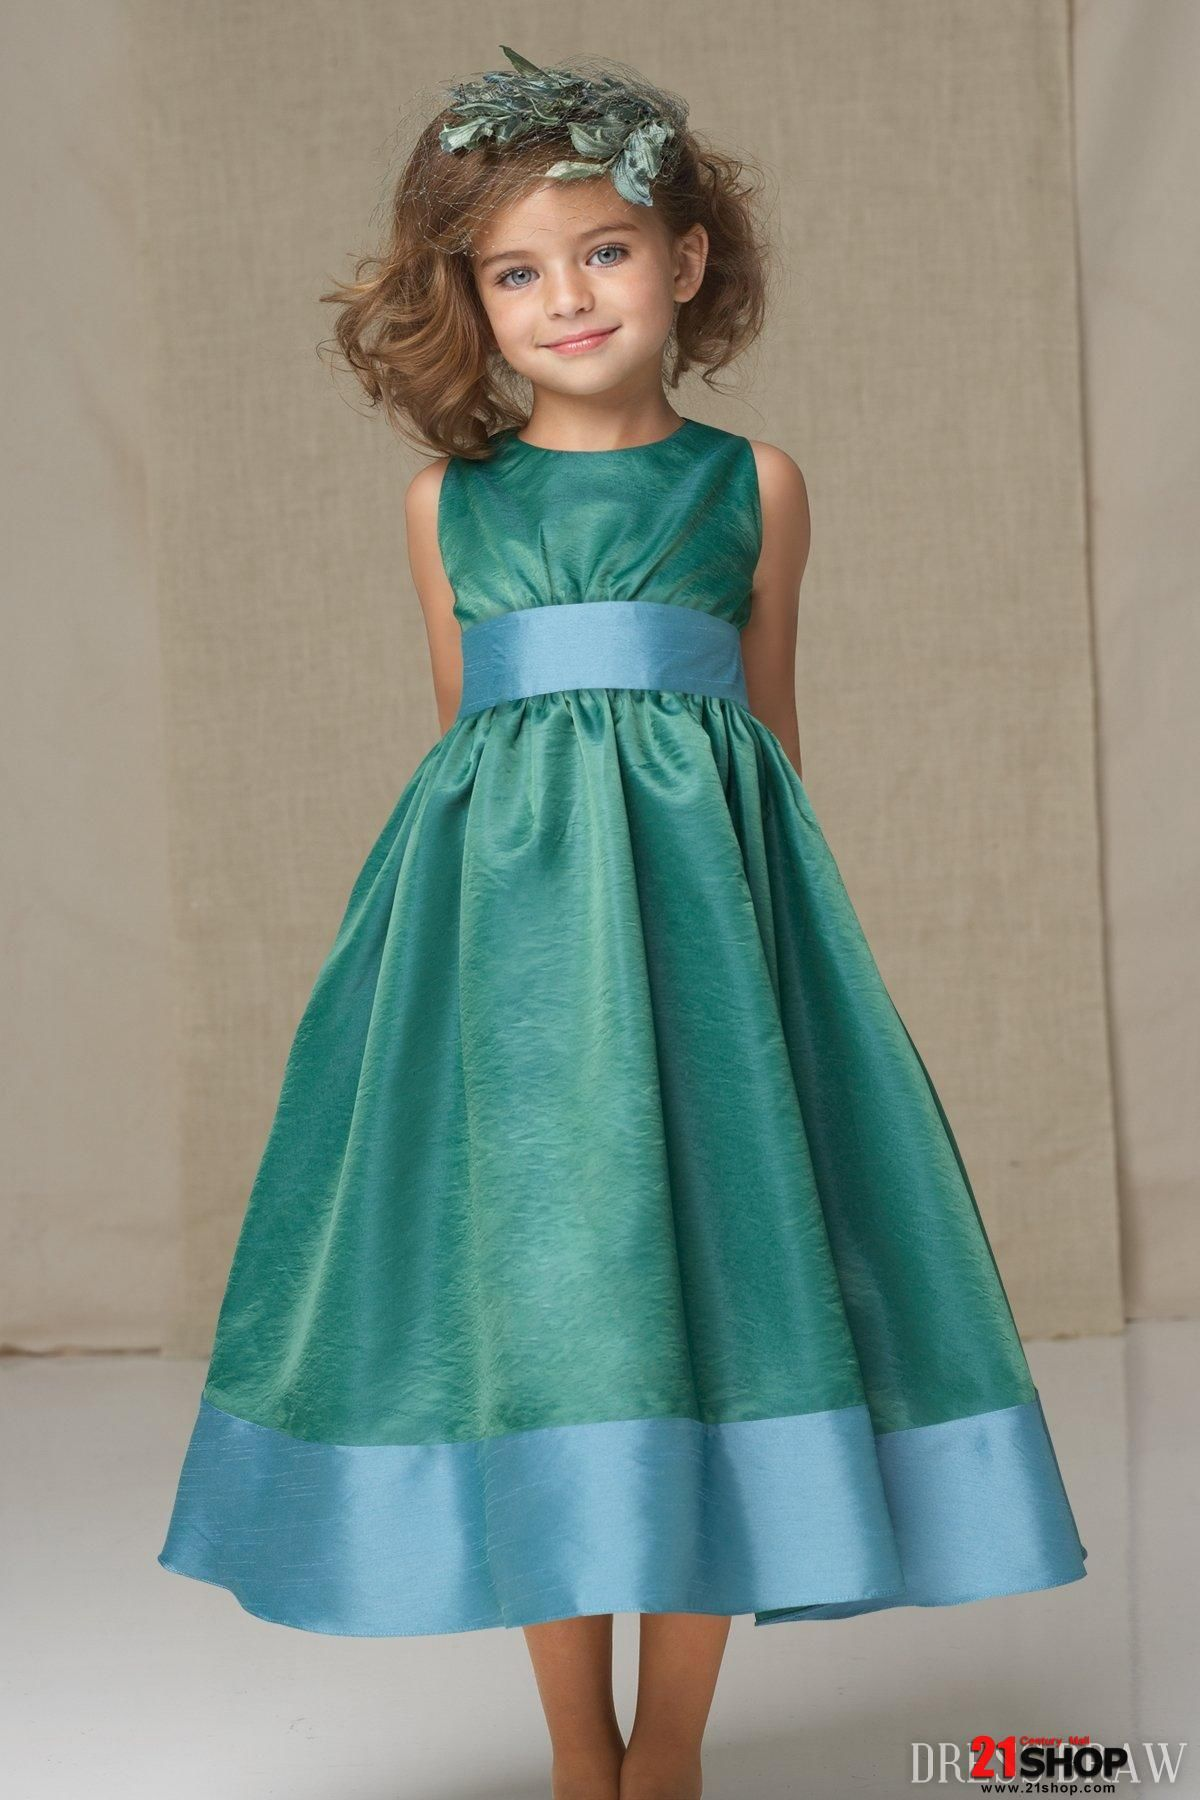 Flower girl dress not a huge fan of the colors as much as the style